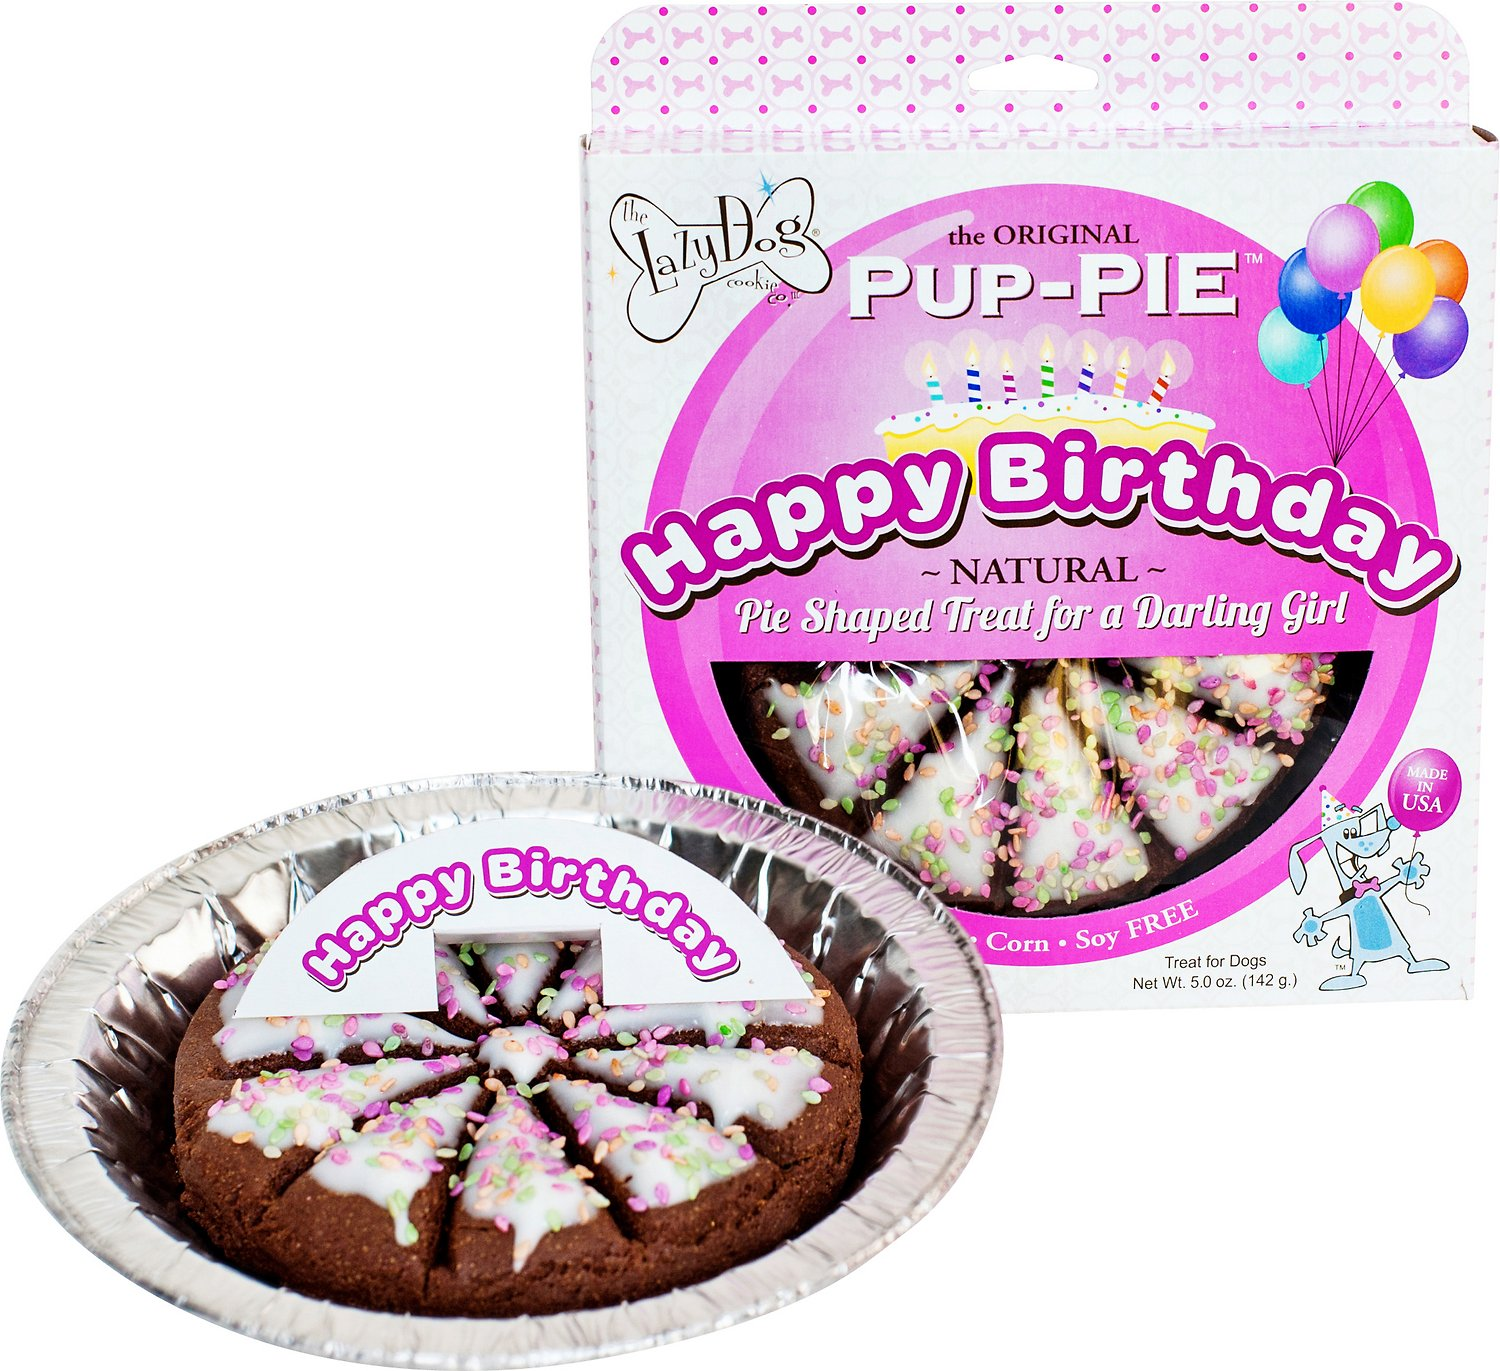 The Lazy Dog Cookie Co. Happy Birthday Pup-PIE Dog Treat, Girl (Weights: 5ounces) Image